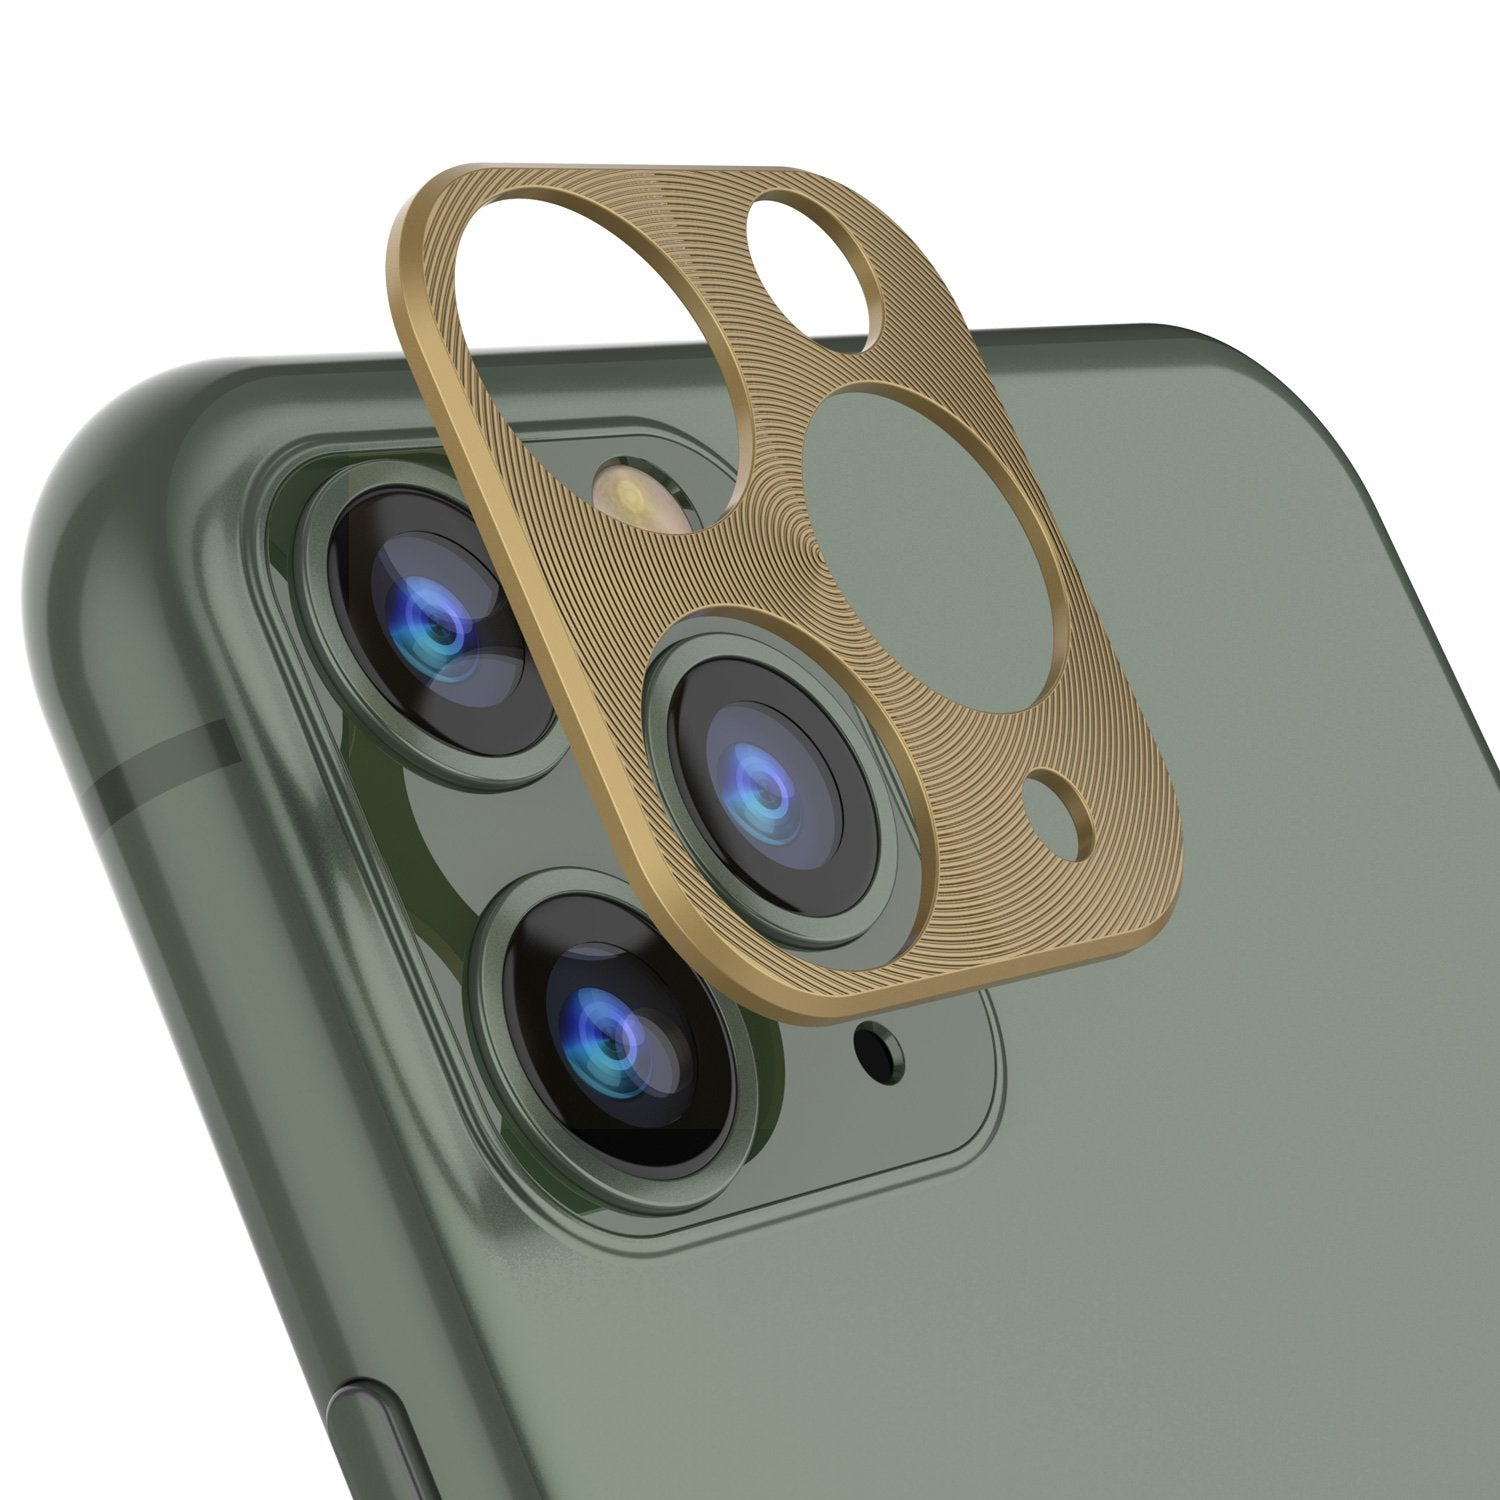 Punkcase iPhone 11 Pro Max Camera Protector Ring [Gold]